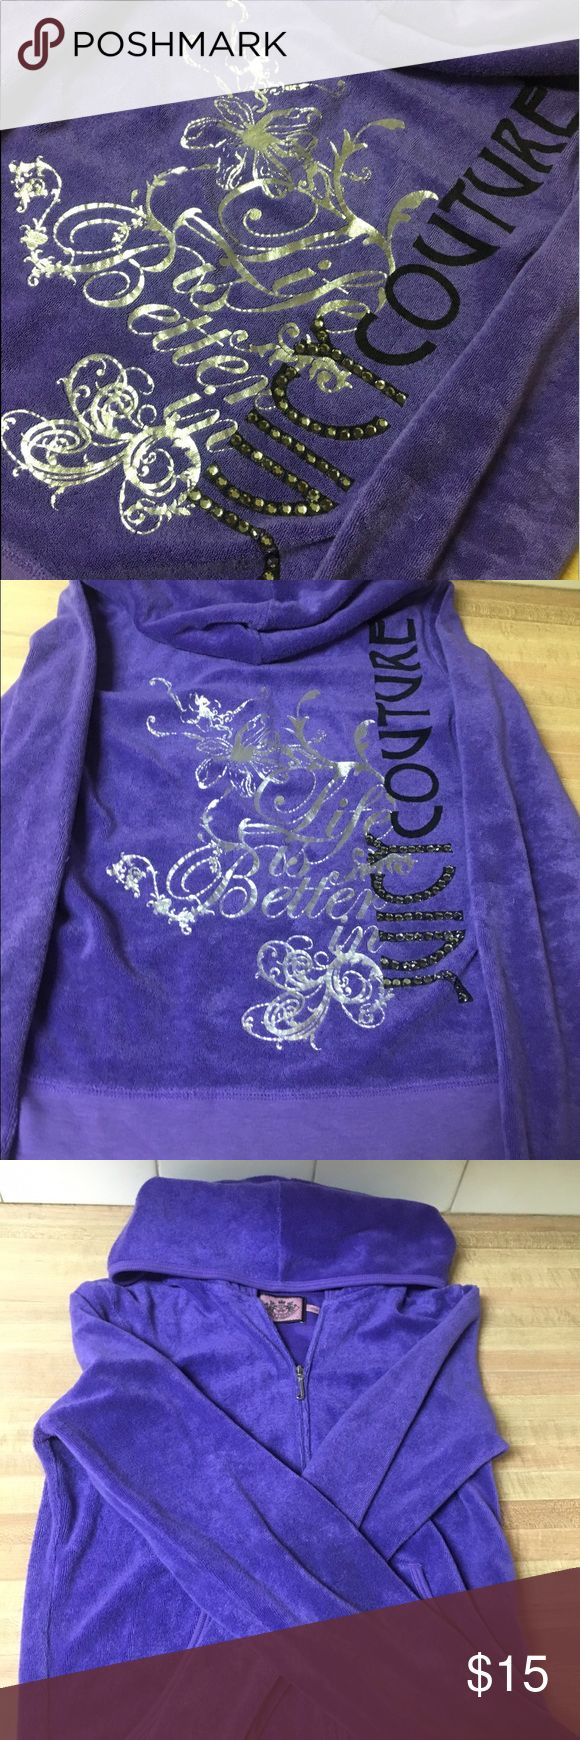 JUICY COUTURE PURPLE TERRY CLOTH HOODIE SIZE SMALL AUTHENTIC JUICY COUTURE PURPLE TERRY CLOTH EMBELLISHED HOODIE WOMENS SIZE SMALL VERY VERY GOOD CONDITION AS SHOWN IN PHOTOS!!!! COMES FROM SMOKE FREE & PET FREE HOME. PLEASE FEEL FREE TO SEND BEST OFFERS IF INTERESTED. PRICES ARE ALWAYS NEGOTIABLE !! Juicy Couture Tops Sweatshirts & Hoodies